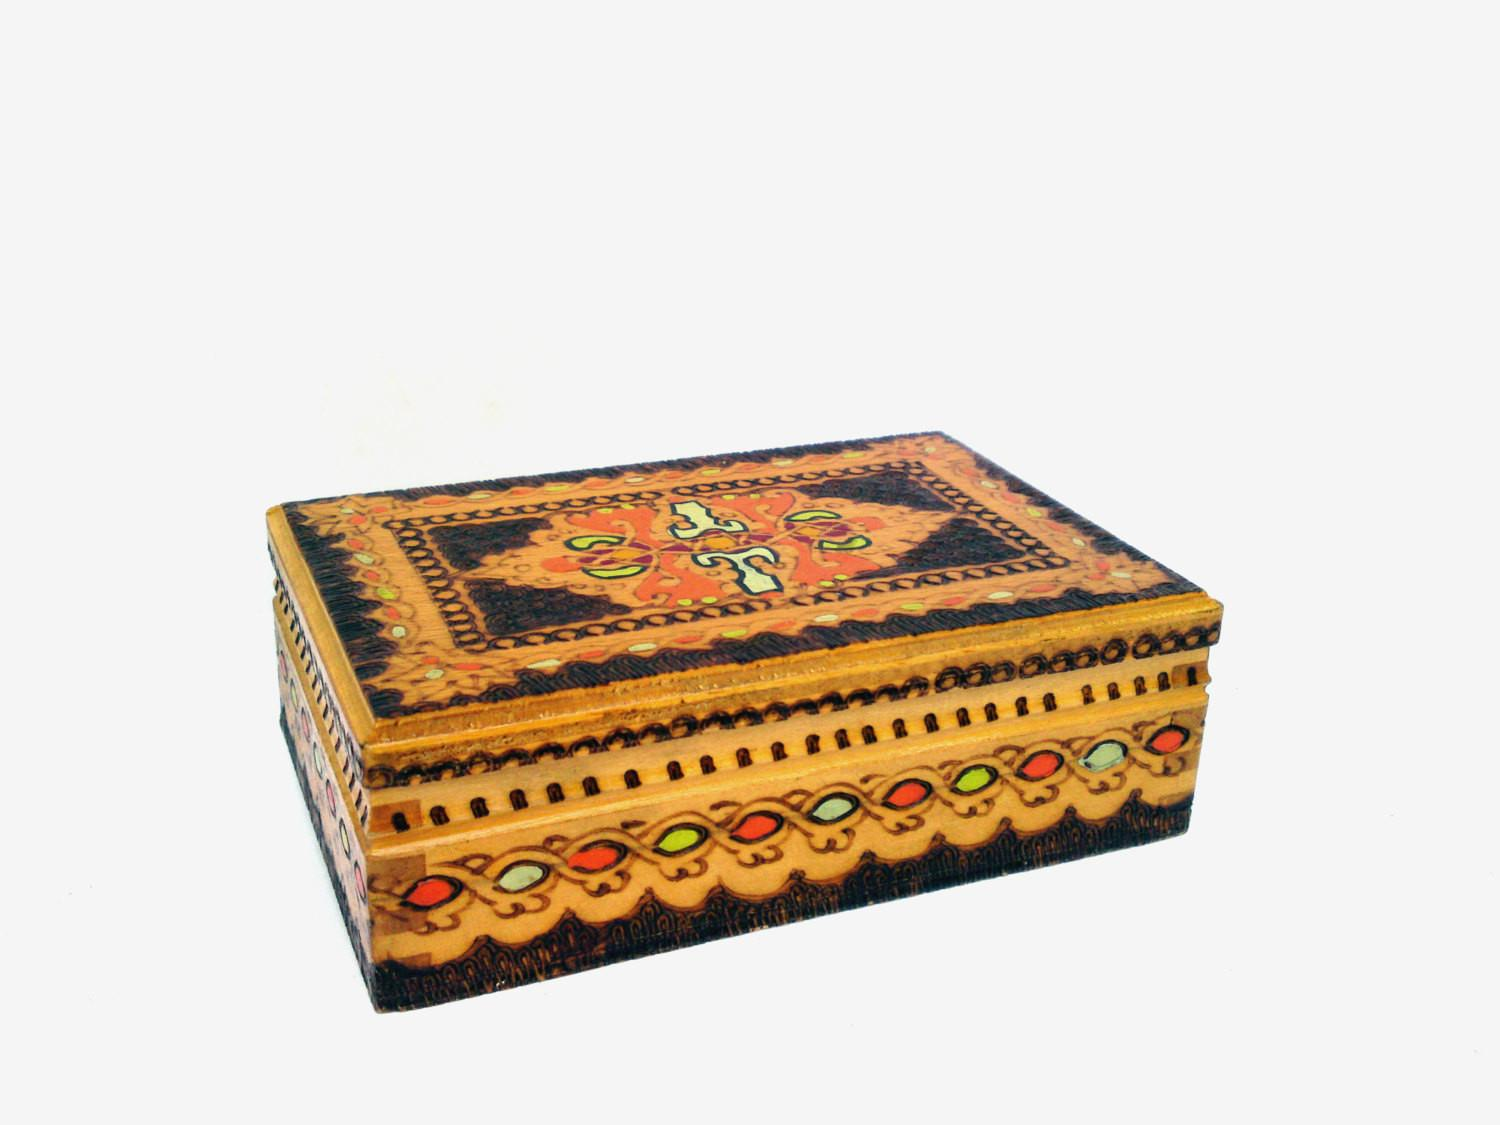 Vintage Jewelry Wooden Box Retro Handmade